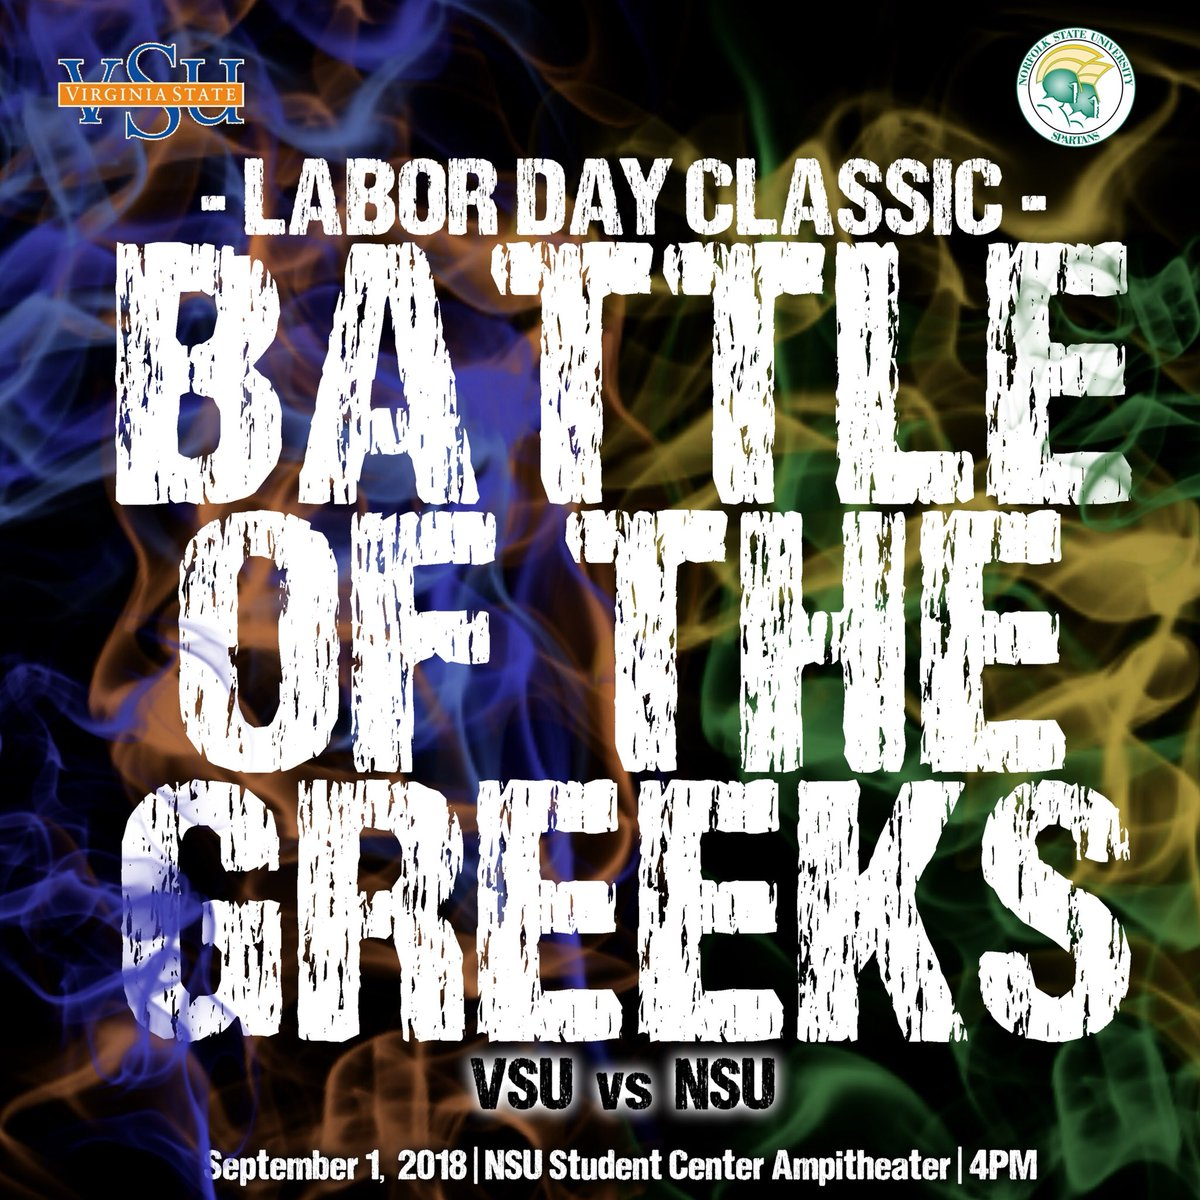 Nsu Student Center Ampitheater For The Labor Day Clic Battle Of Greeks Stroll Off On Saay September 1st At 4pm We Hope You Re Ready